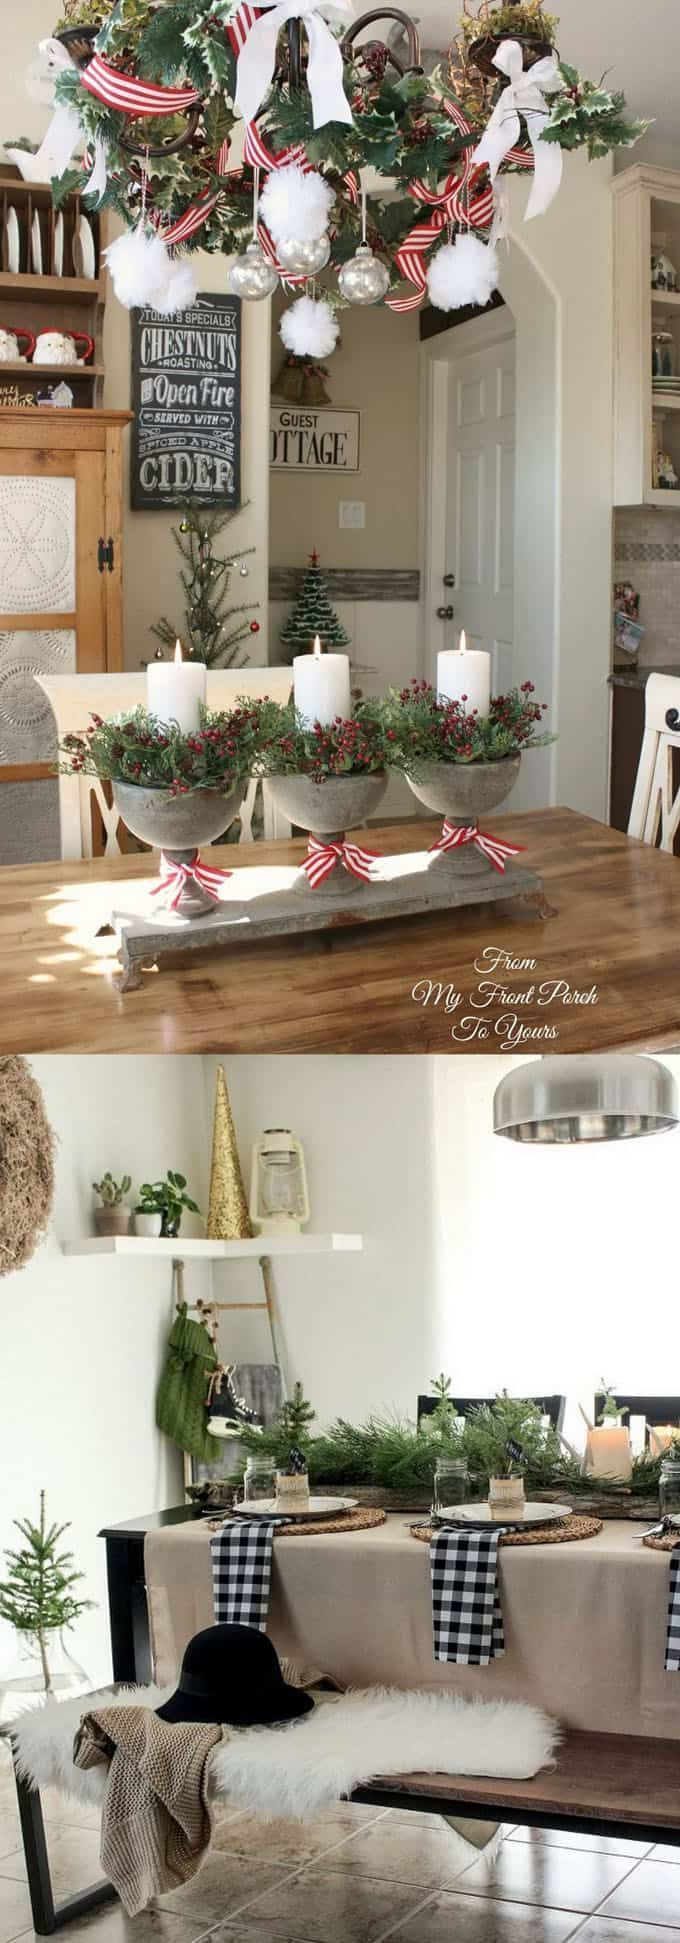 Photo of 100+ Favorite Christmas Decorating Ideas For Every Room in Your Home : Part 2